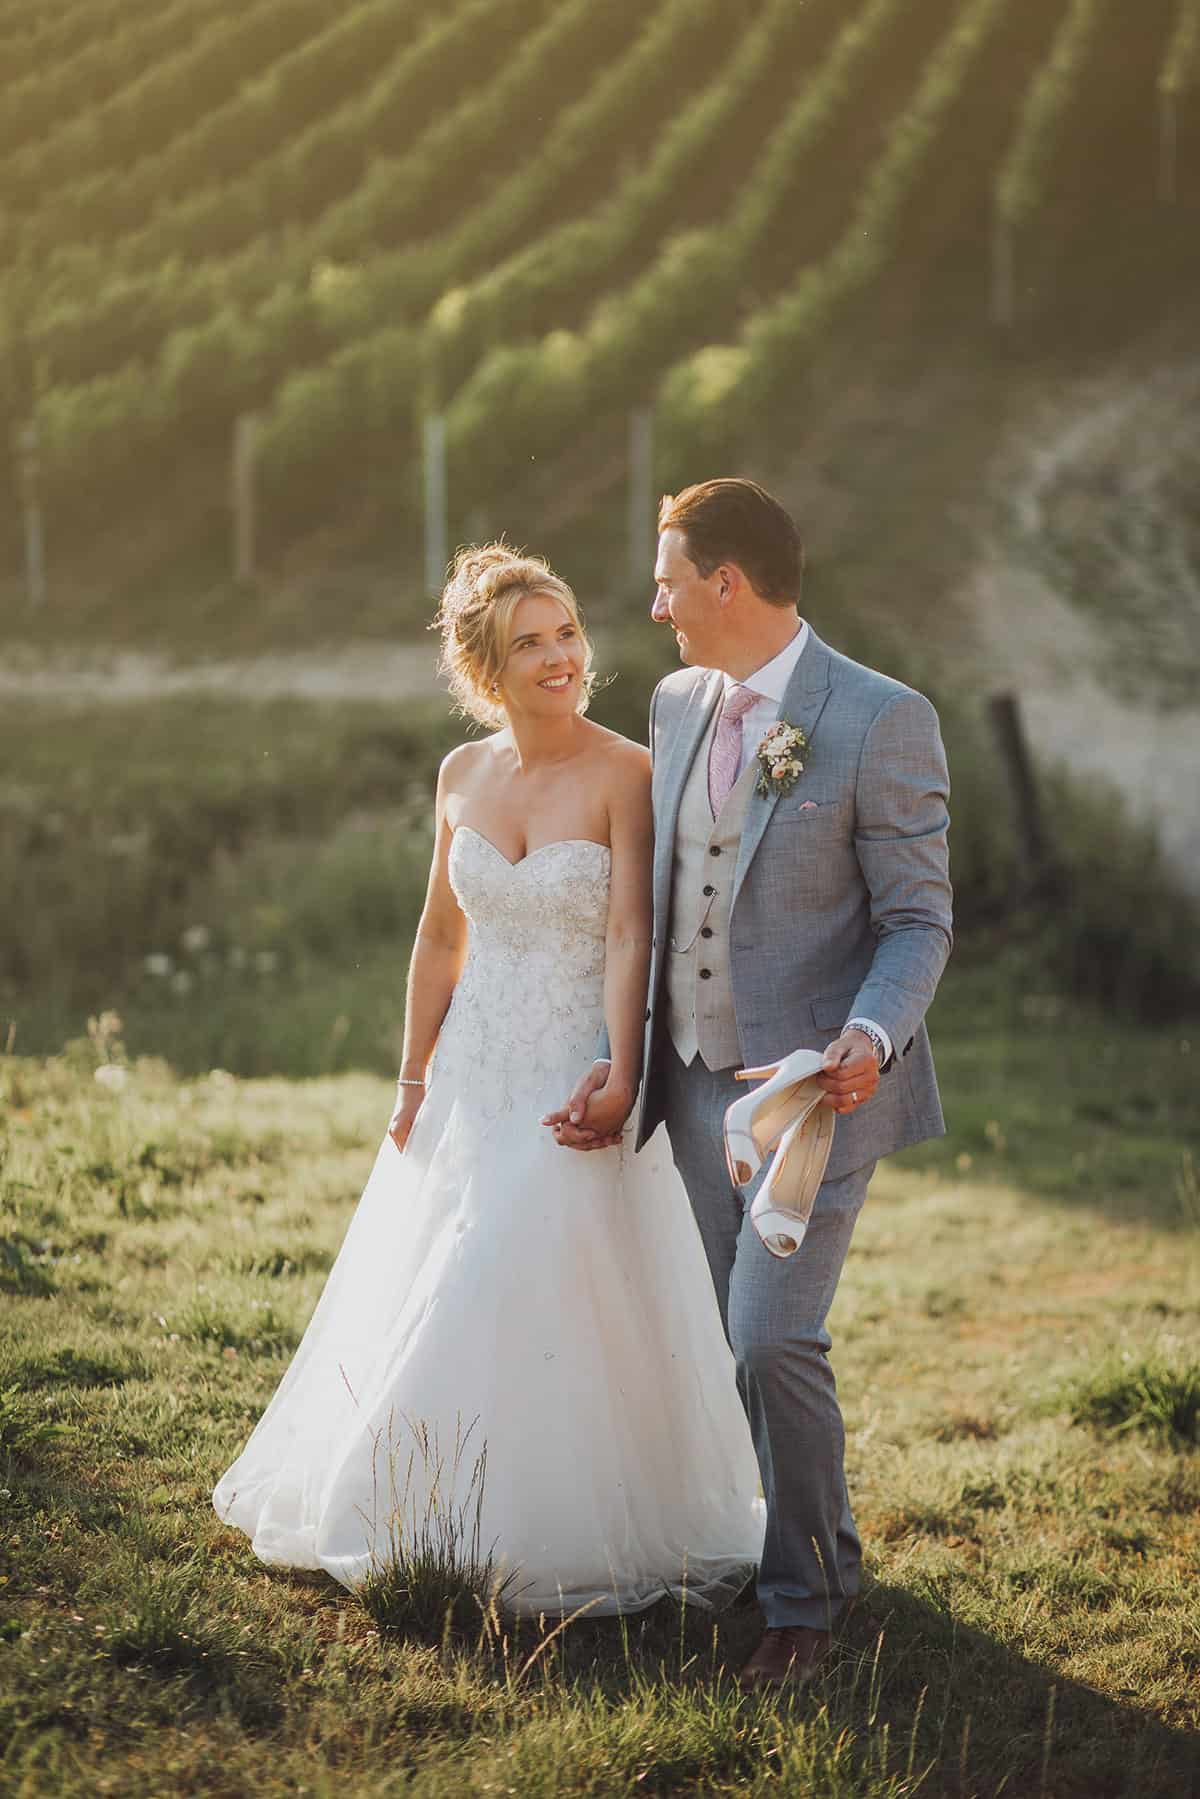 bride looks at groom as they walk through vineyards, he holds her shoes